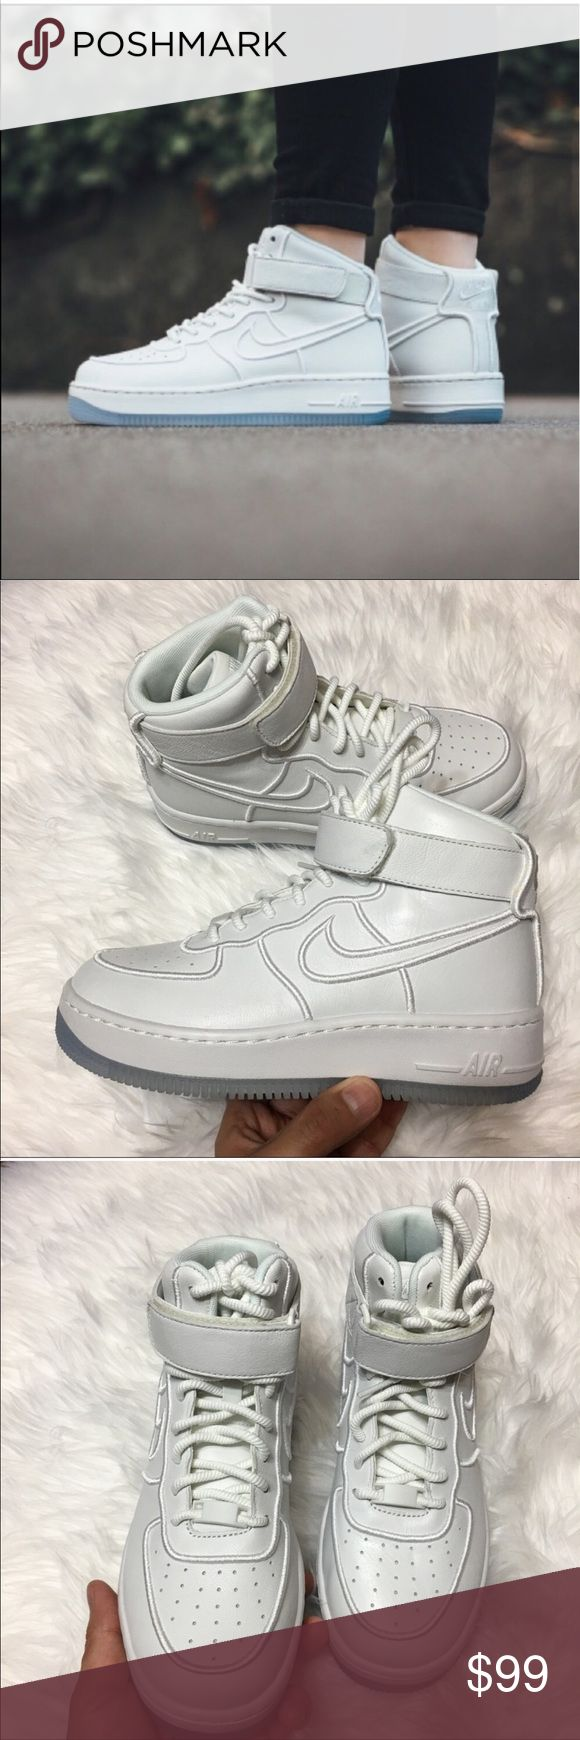 Nike Air Force 1 Upstep Hi BRAND NEW- ORIGINAL BOX NO LID  ✅USE OFFER BUTTON TO MAKE OFFERS❗️❗️❗️❗️❗️                                                                                                            ✅NEXT DAY SHIPPING ✅BUNDLES DISCOUNT                                                                 🙅🏻 NO TRADES 🙅🏻NO LOWBALLING Nike Shoes Athletic Shoes